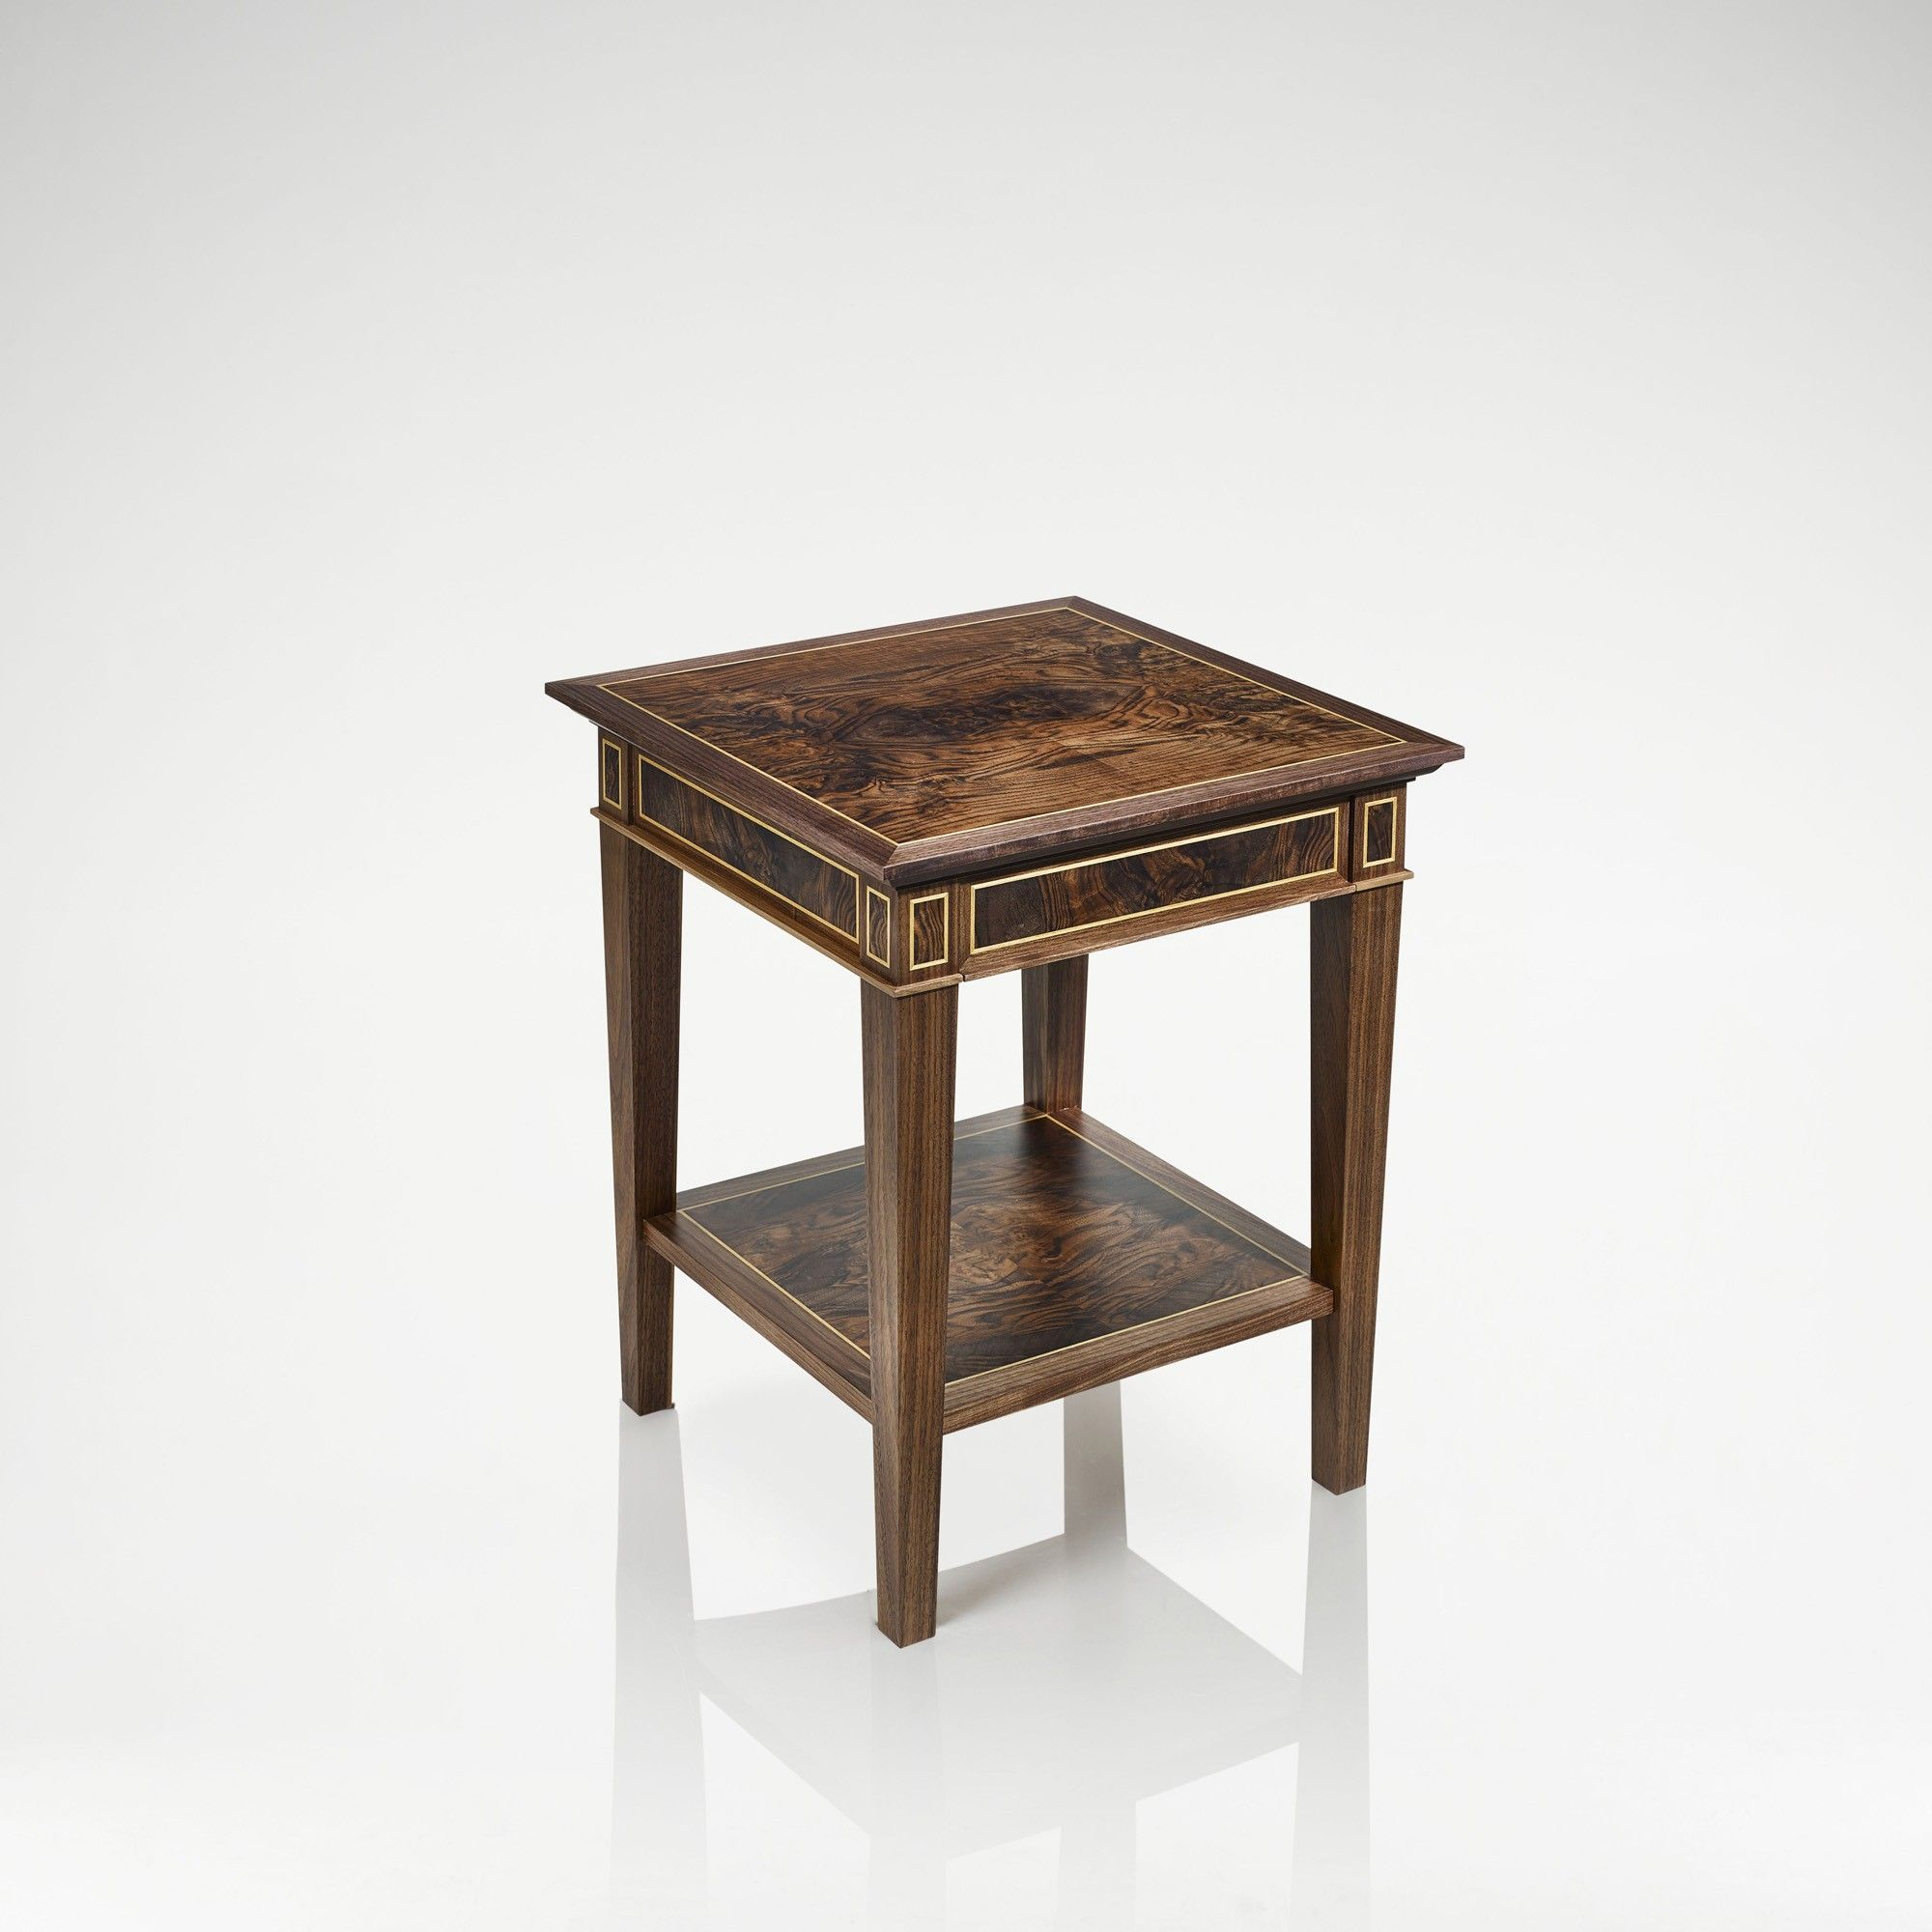 Linley classic bedside table satinwood furniture pinterest